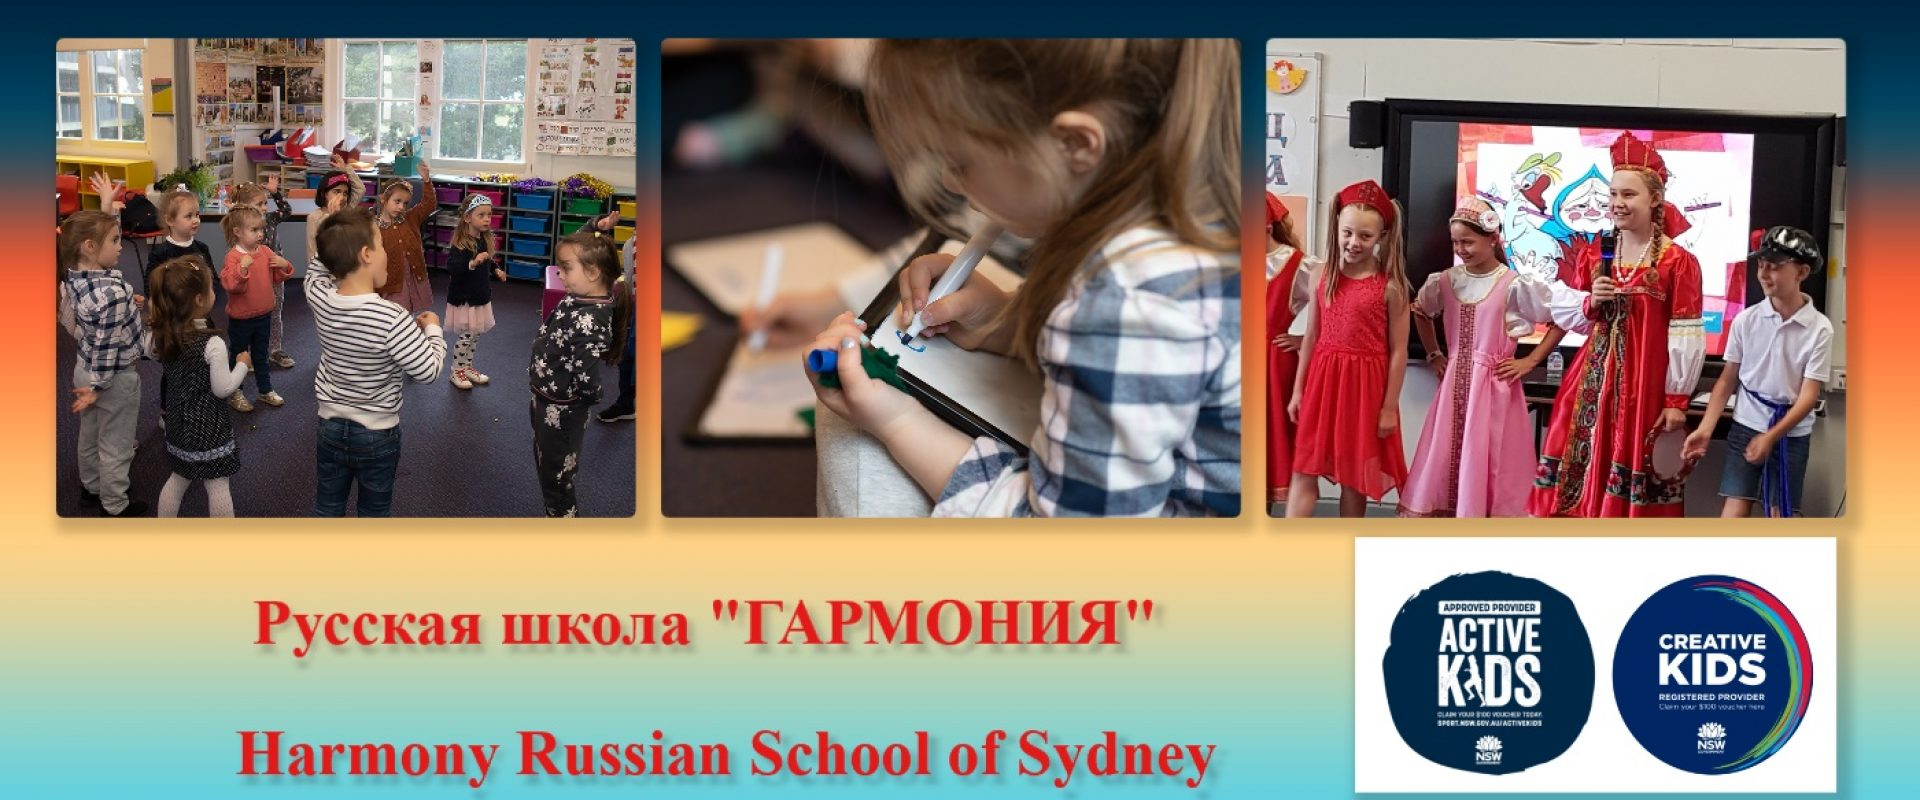 Harmony Russian School of Sydney